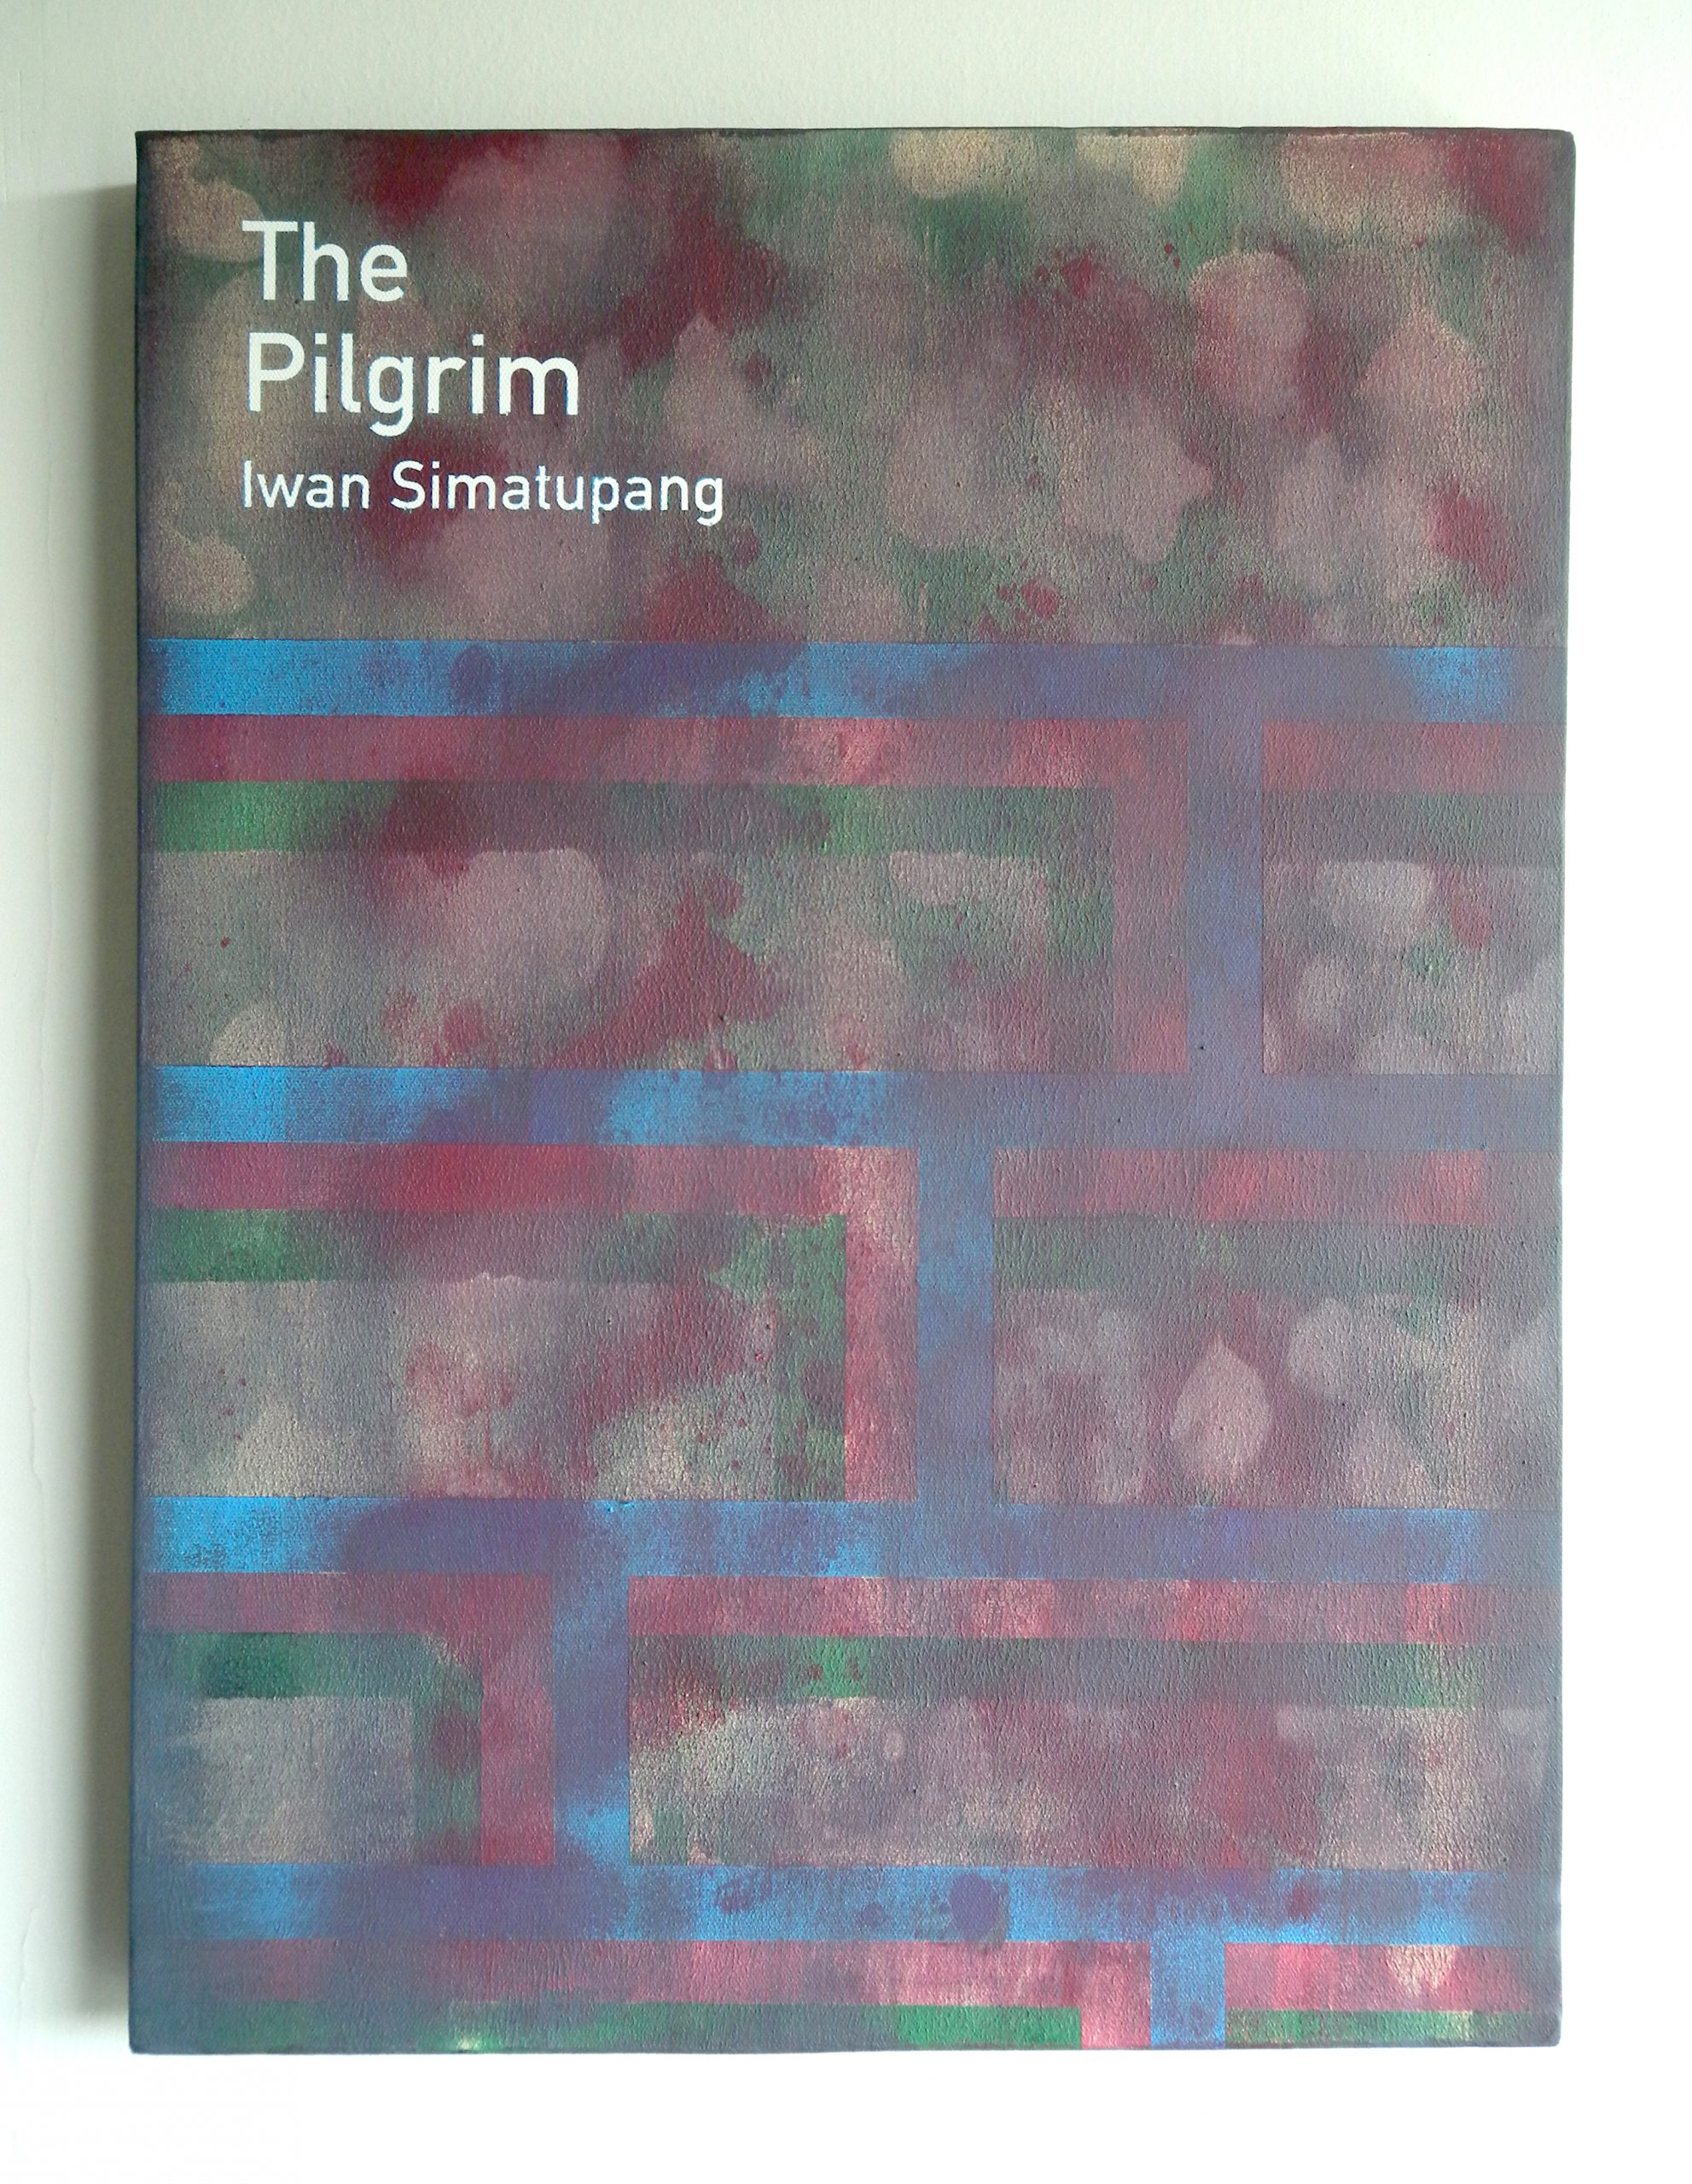 The Pilgrim / Iwan Simatupang